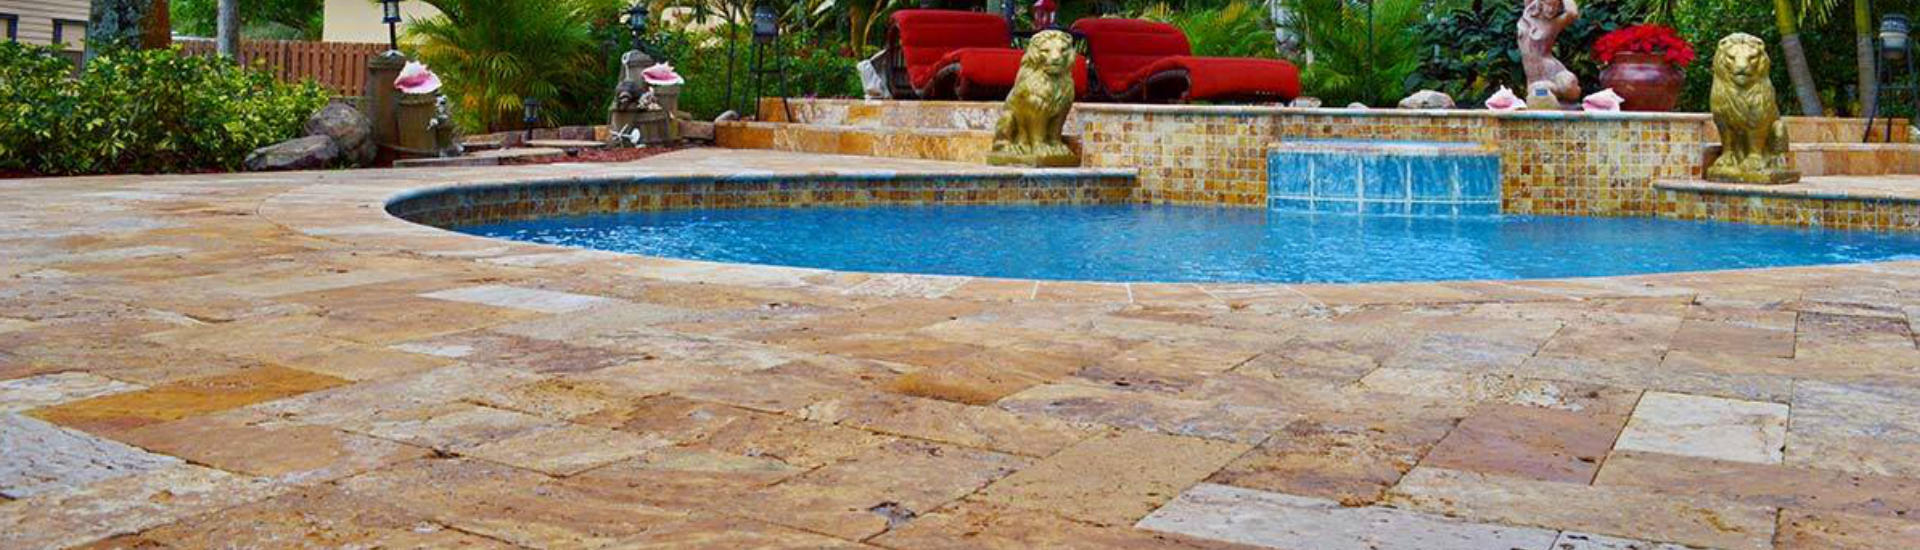 backyard swimming pool with a waterfall and two figures of lions on a deck